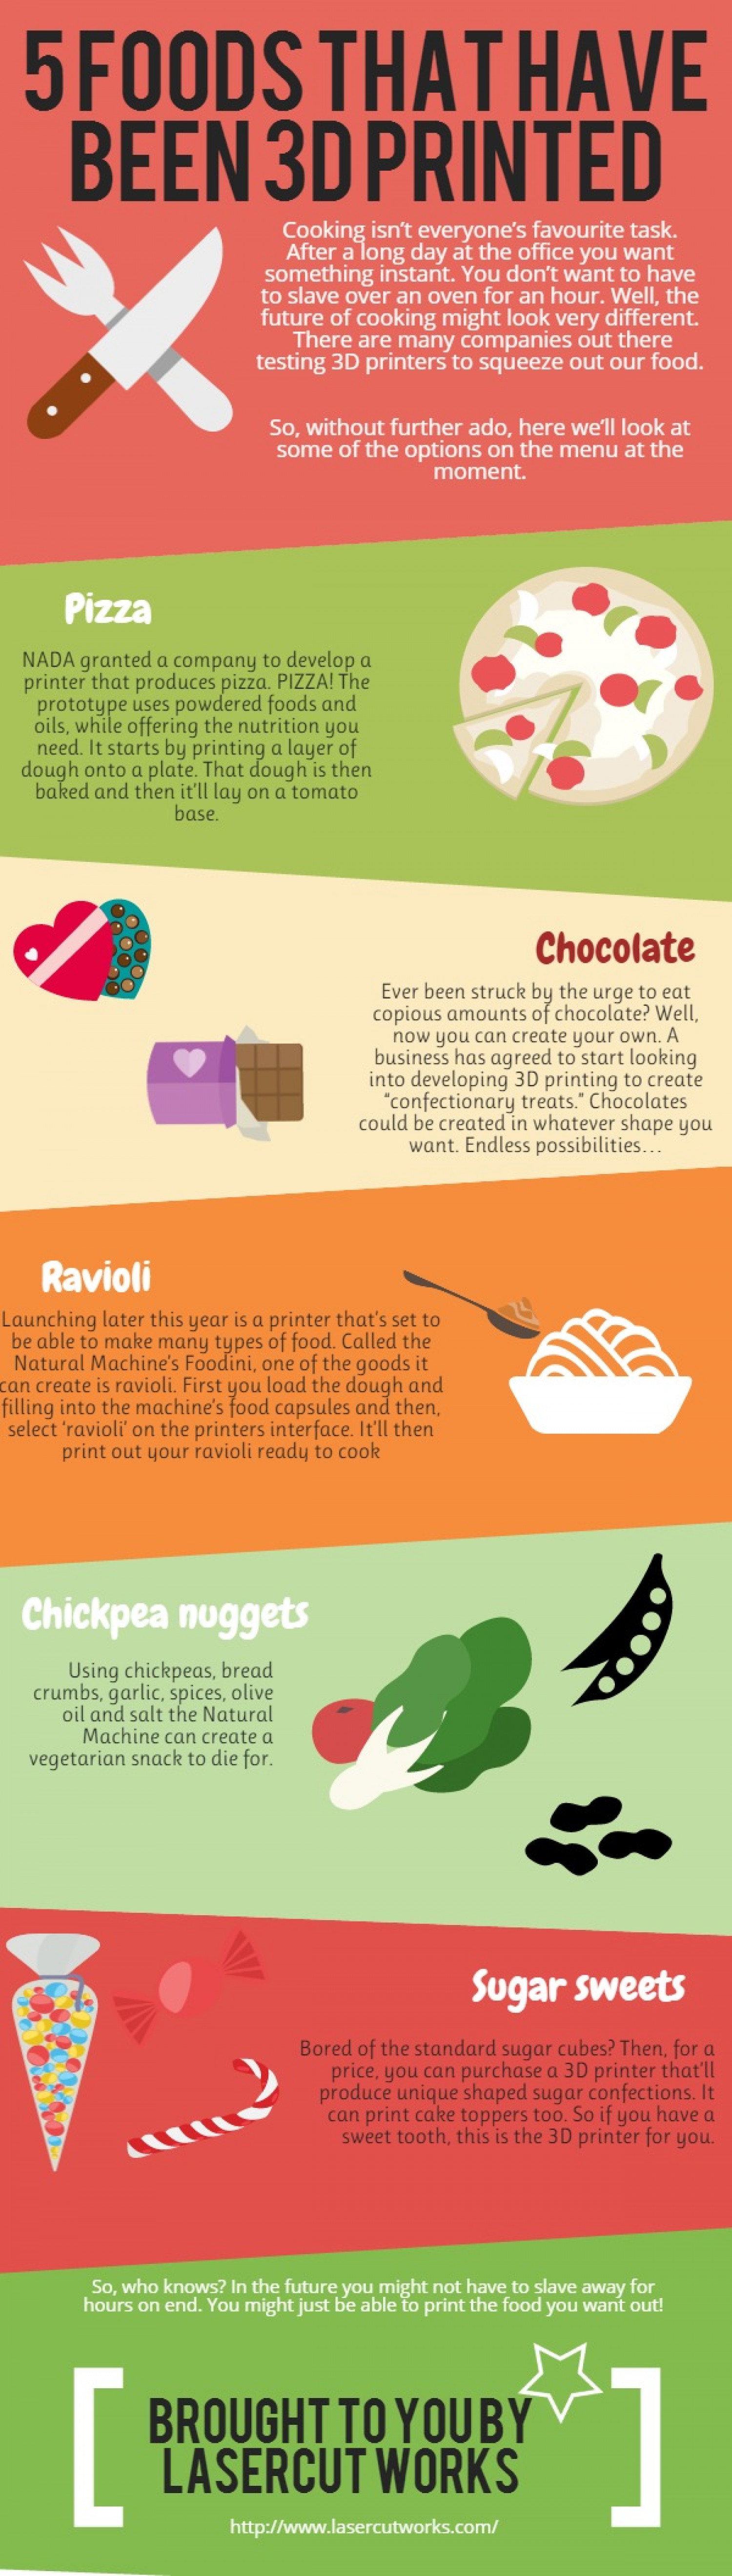 5 3D Printed Foods Infographic